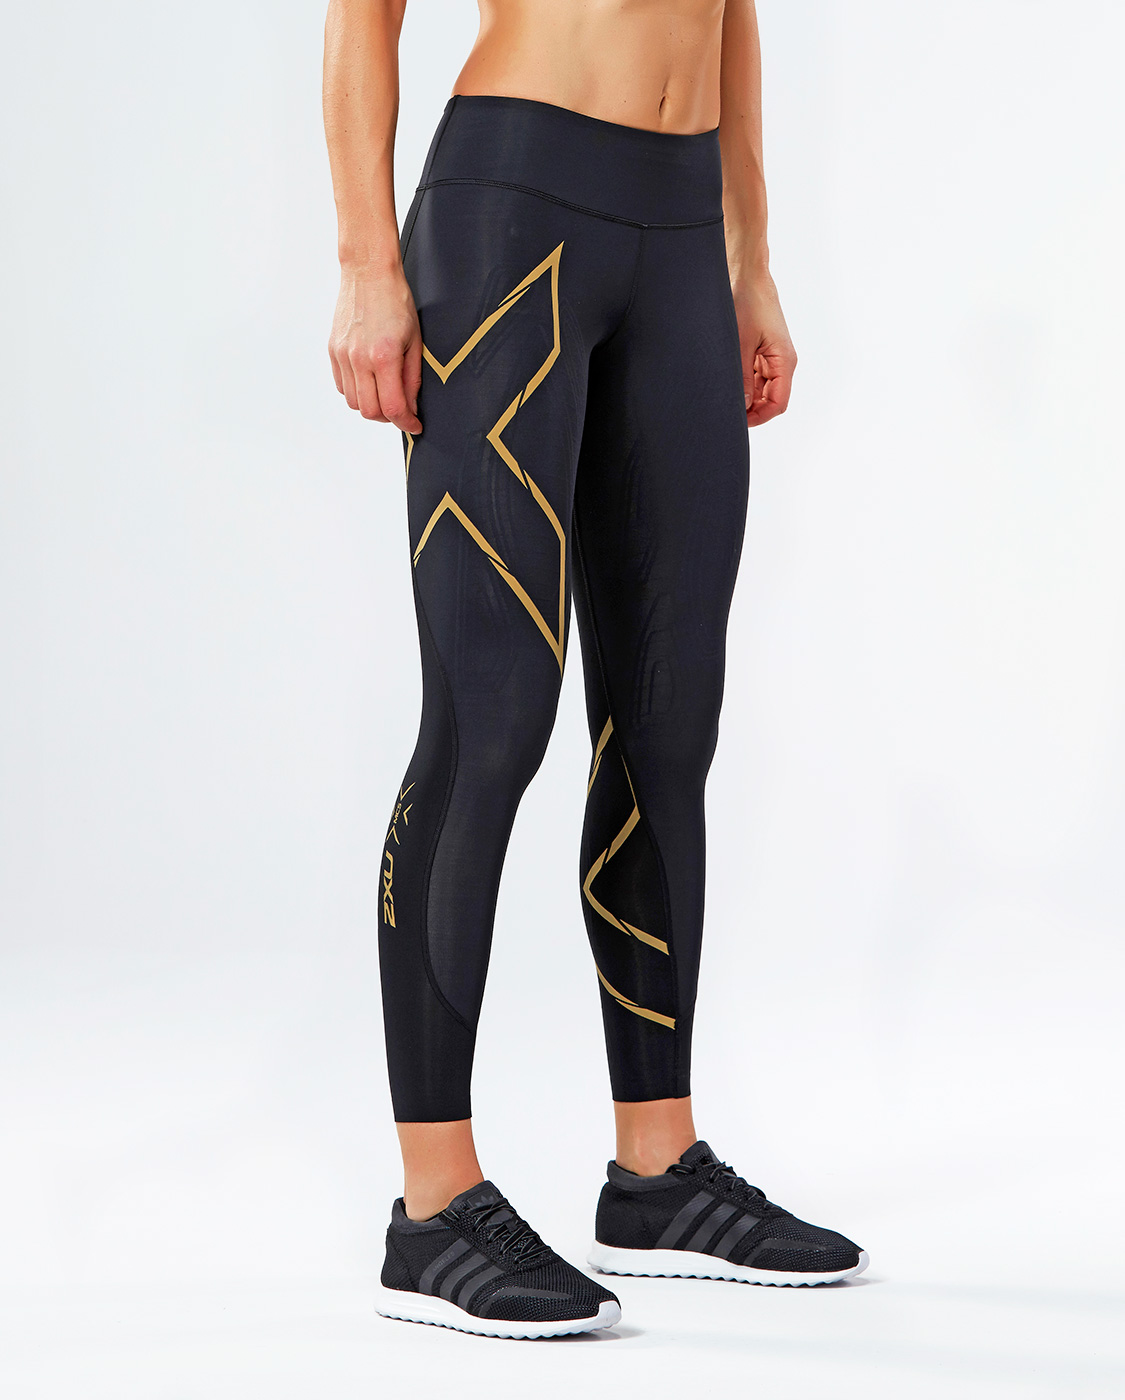 Тайтсы компрессионные 2XU MCS Run W - Black / Gold